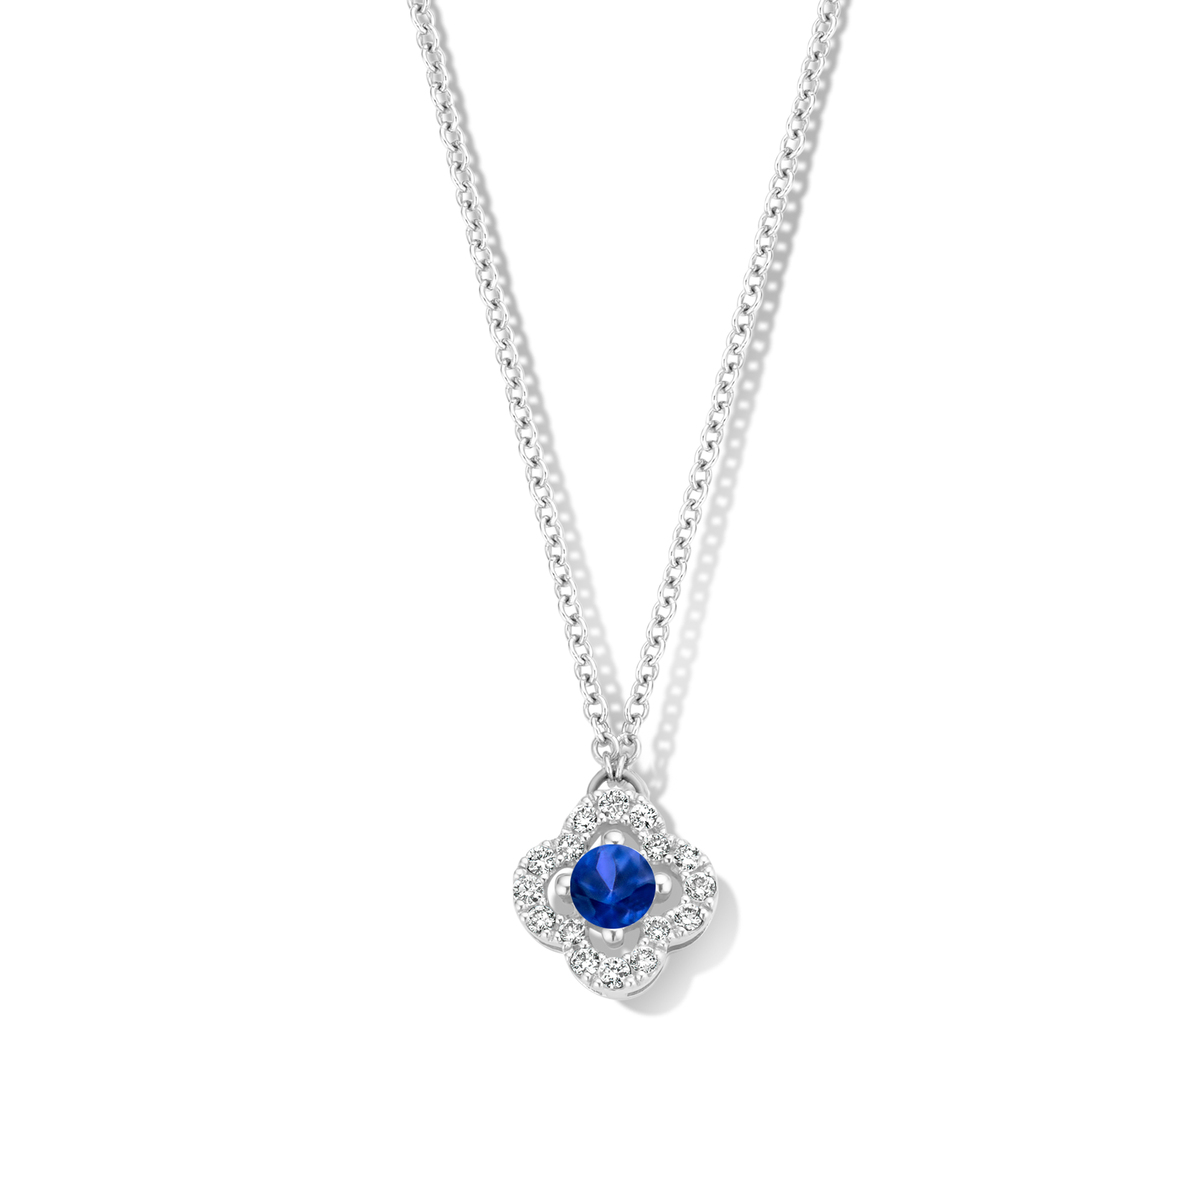 salina necklace in white gold